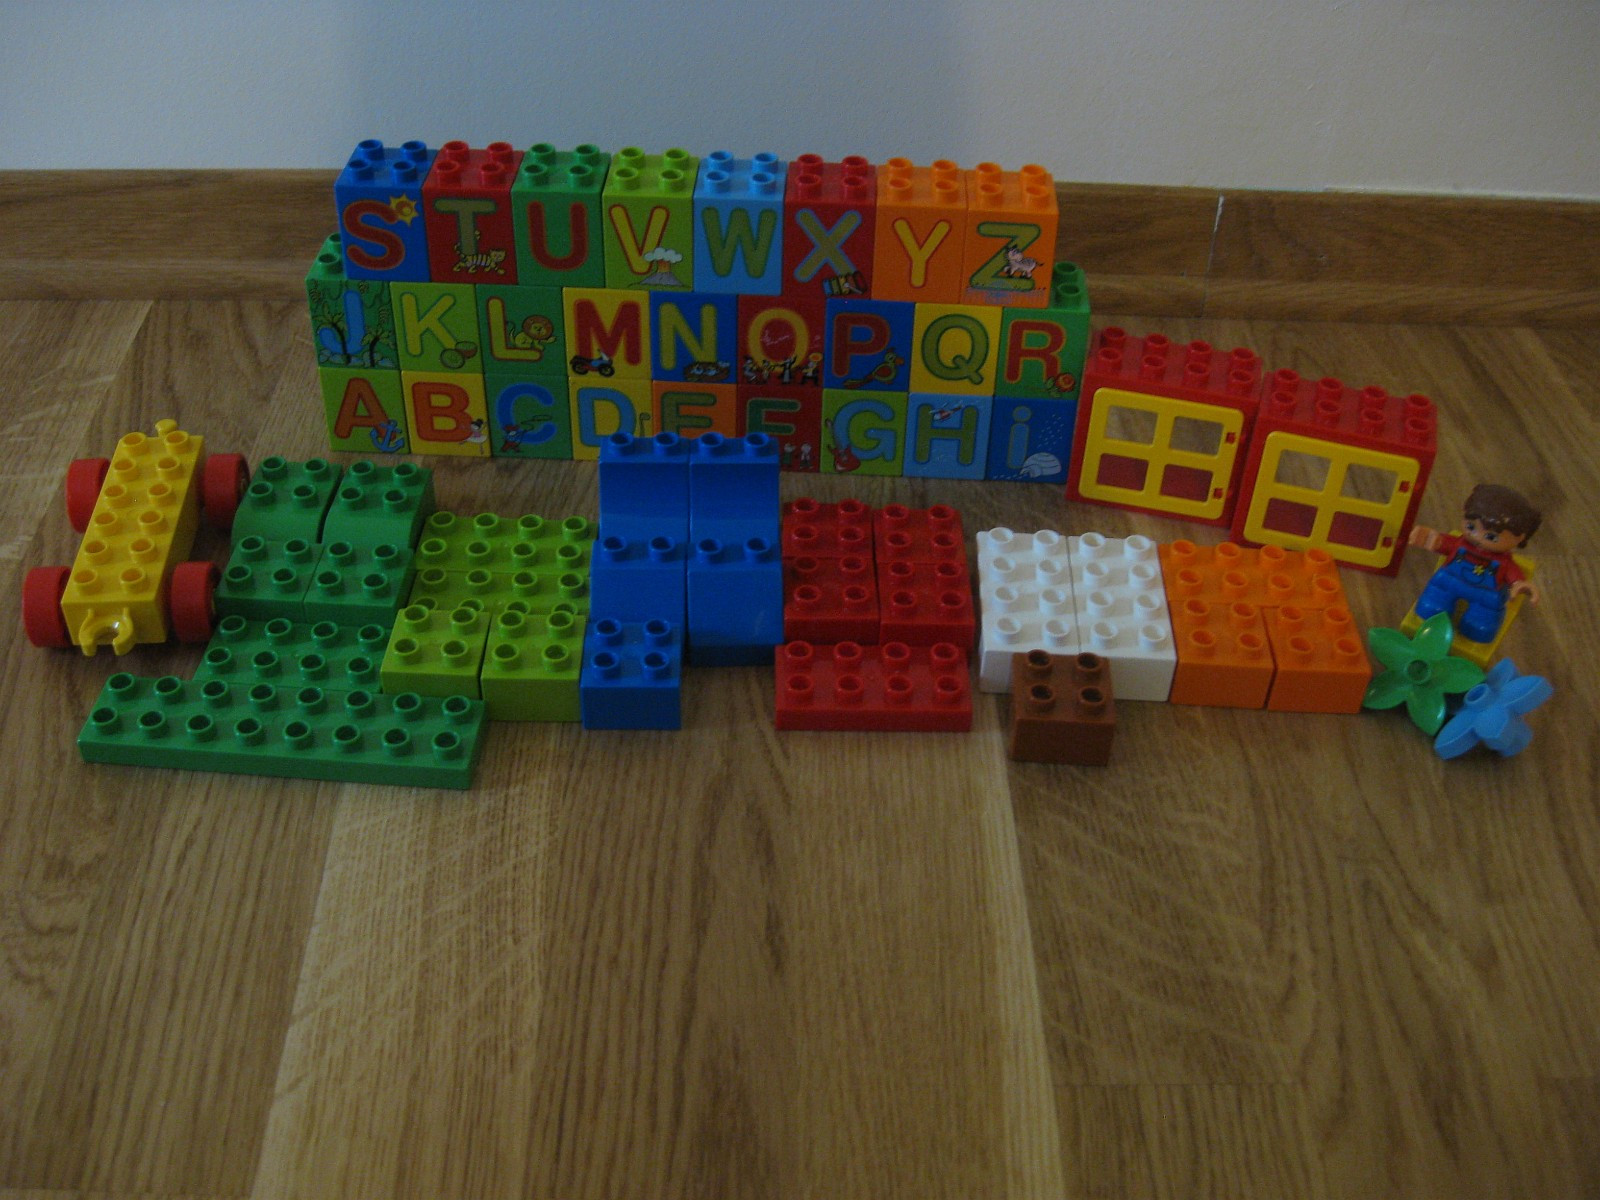 Lego Duplo - Molde  - Lego Duplo til salgs:  1.Play with letters (6051) 61 parts 1 minifig = 250 kr. 2.Play with numbers (5497)57 parts 1 minifig = 200 kr. 3.Basic Bricks - Deluxe (6176) 80 parts = 150 kr. - Molde